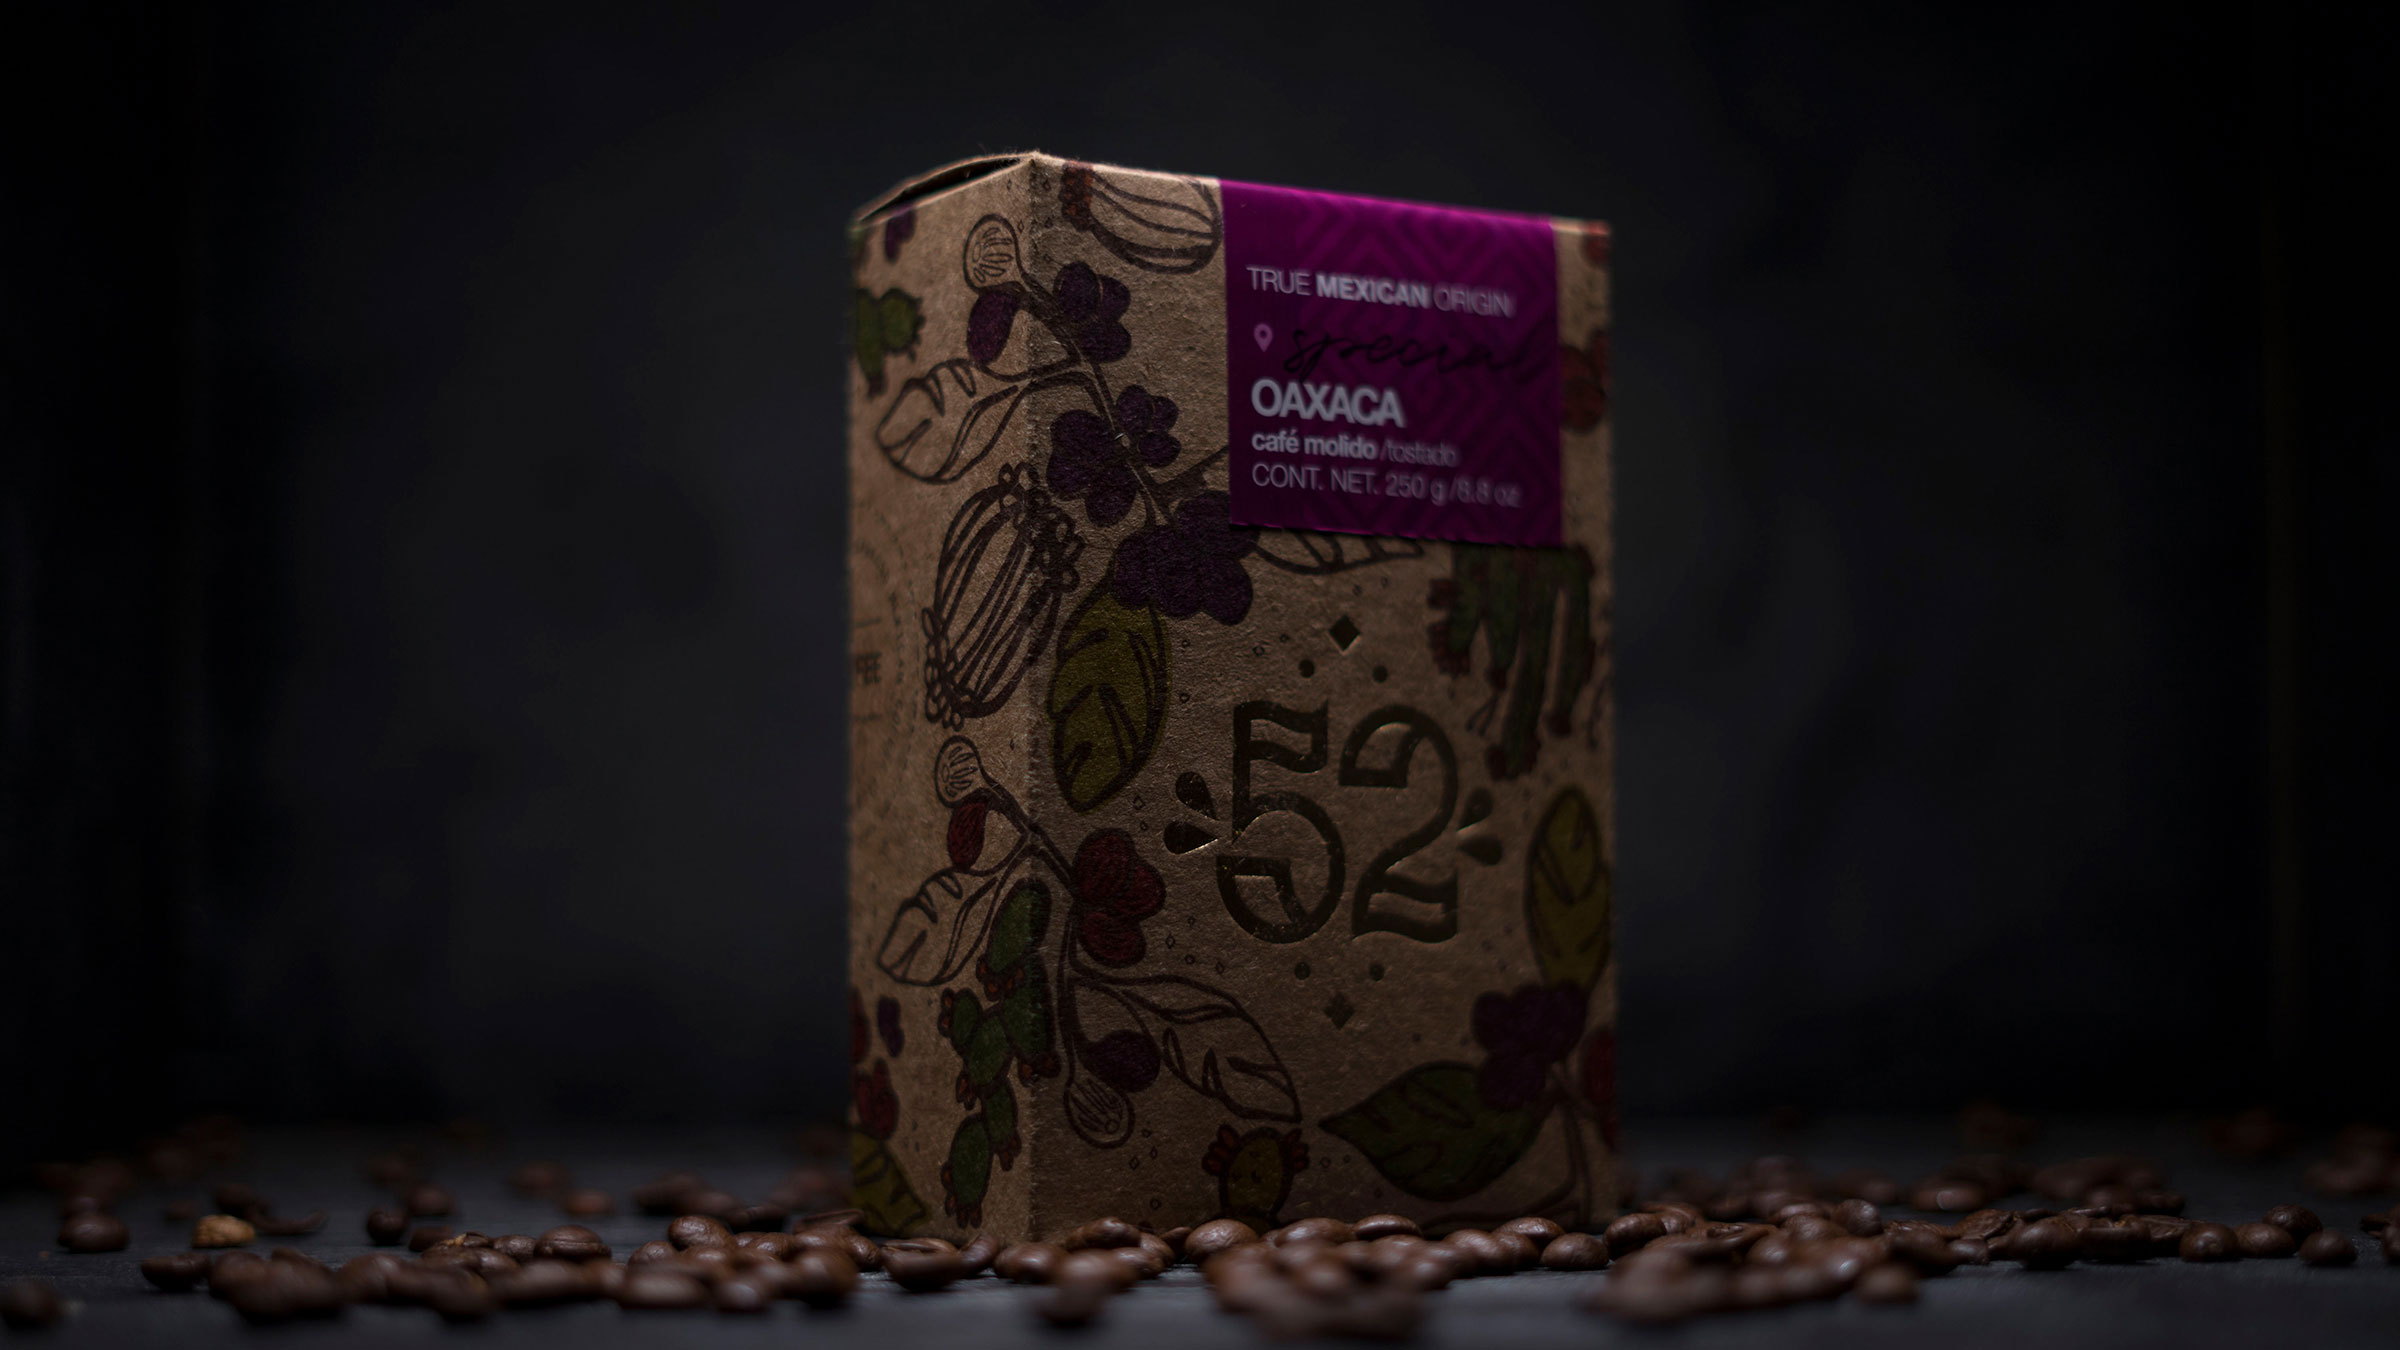 52 Special - Premium Craft Coffee / Café Artesanal Mexicano